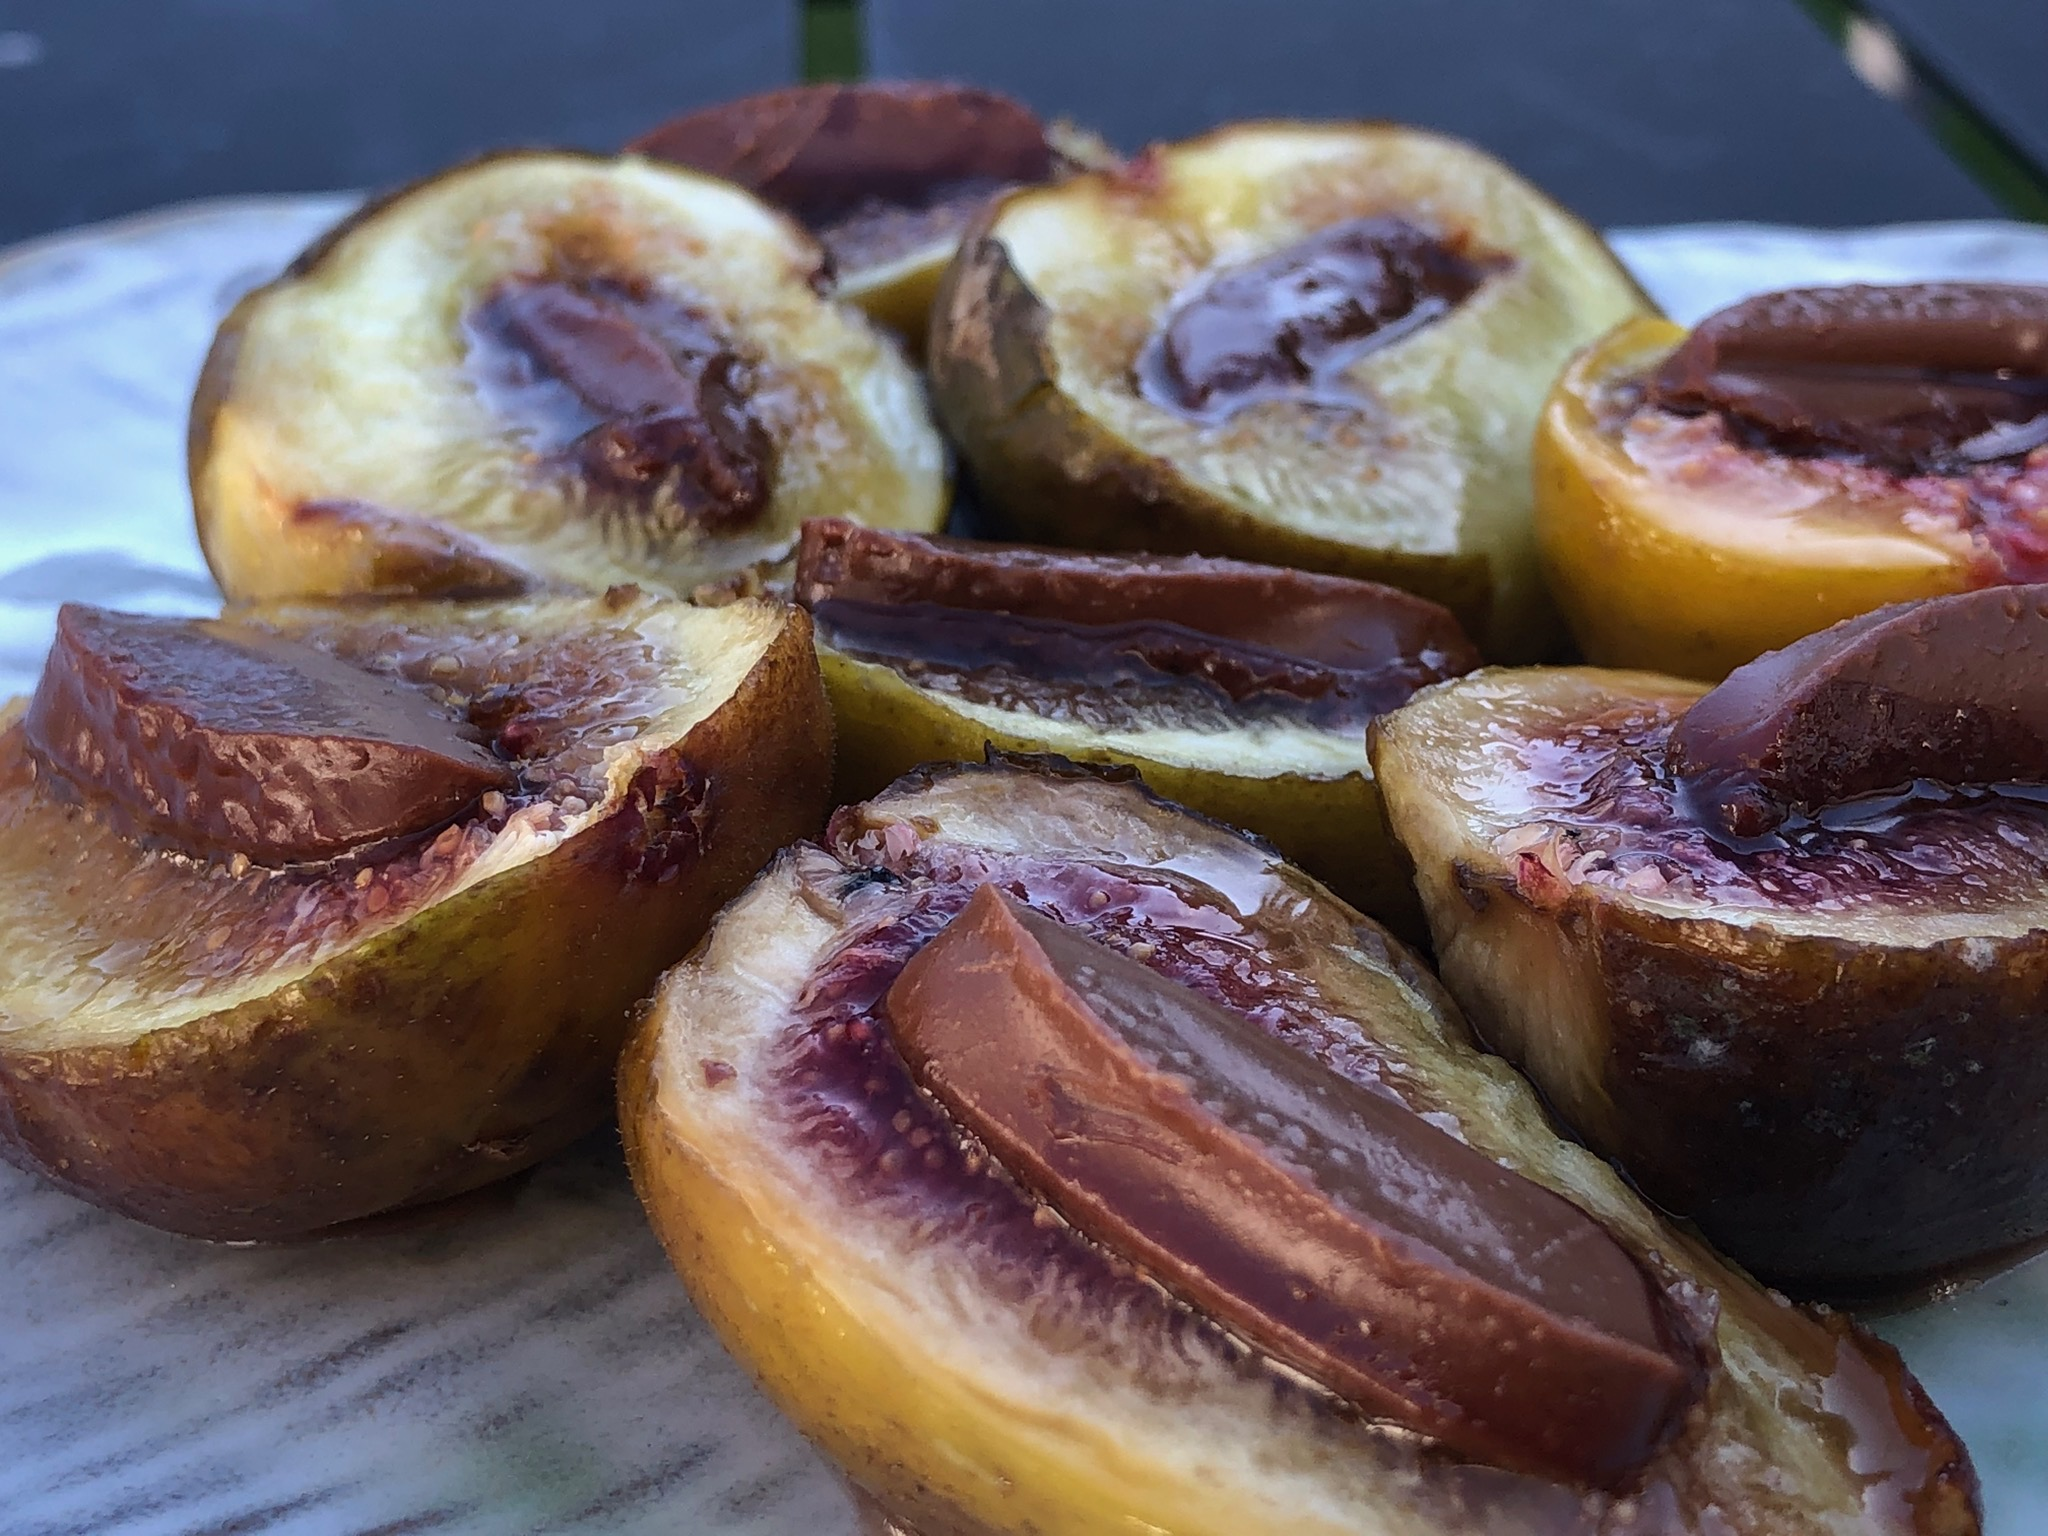 baked fresh figs and chocolate